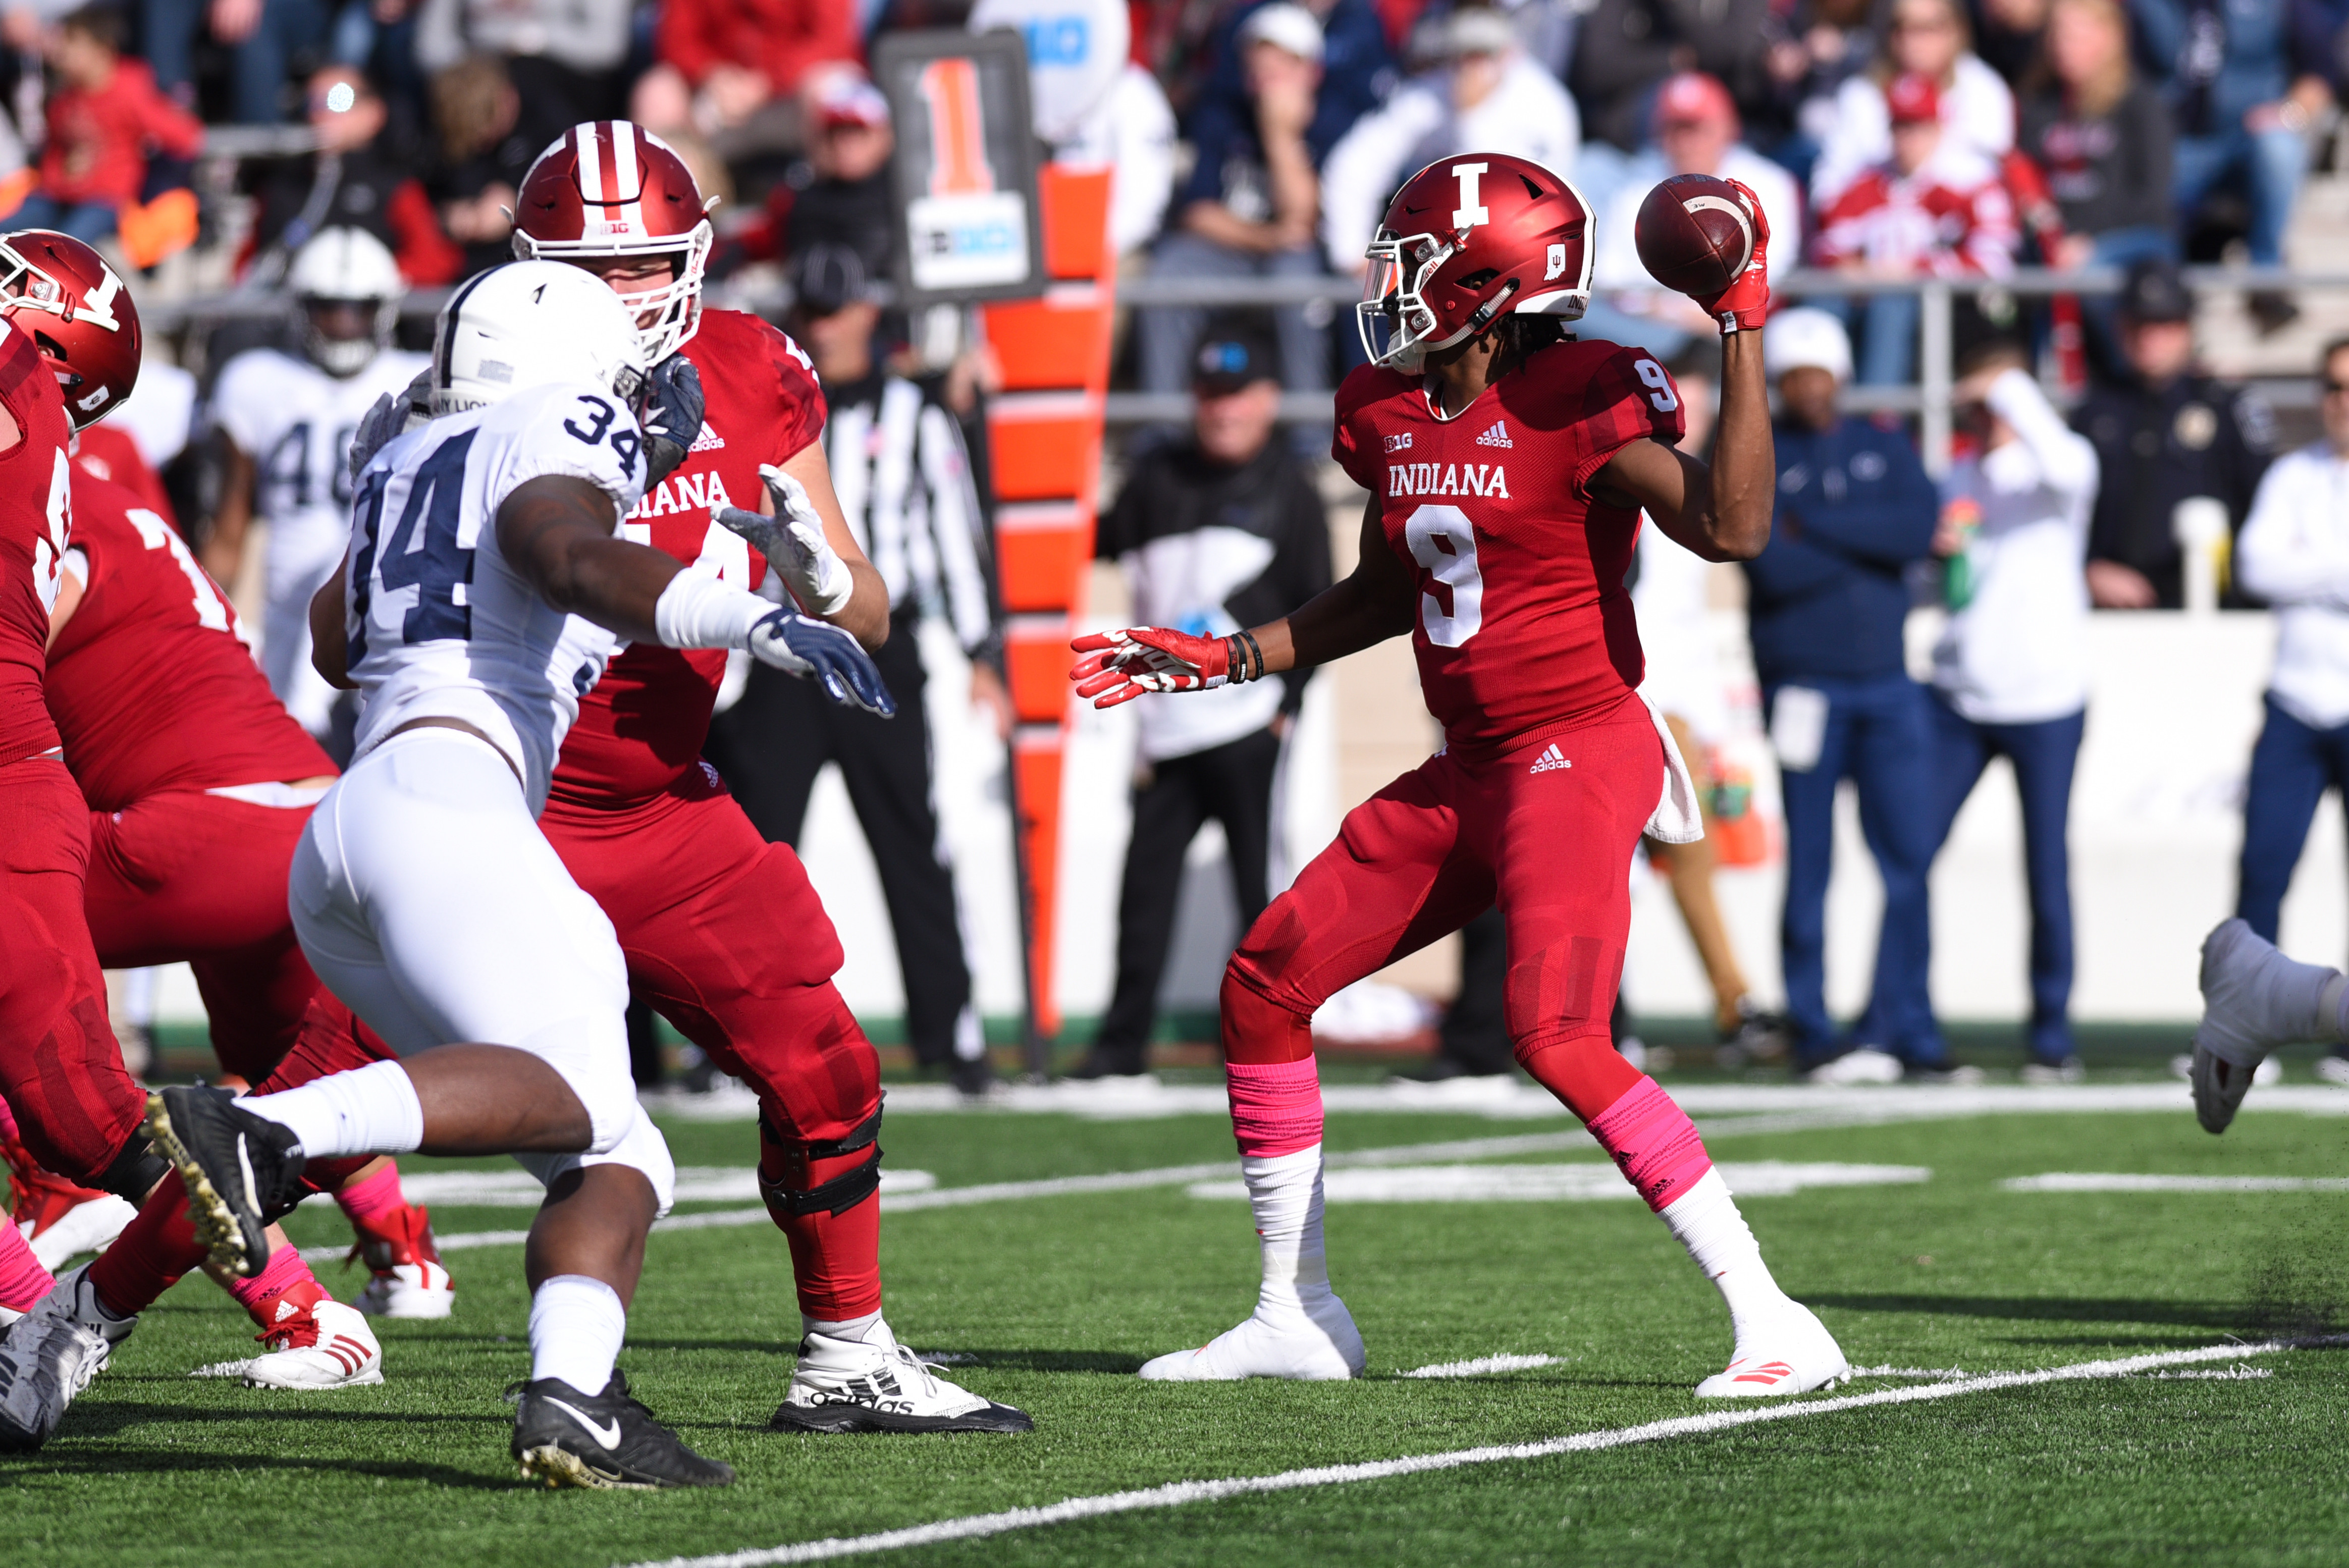 COLLEGE FOOTBALL: OCT 20 Penn State at Indiana